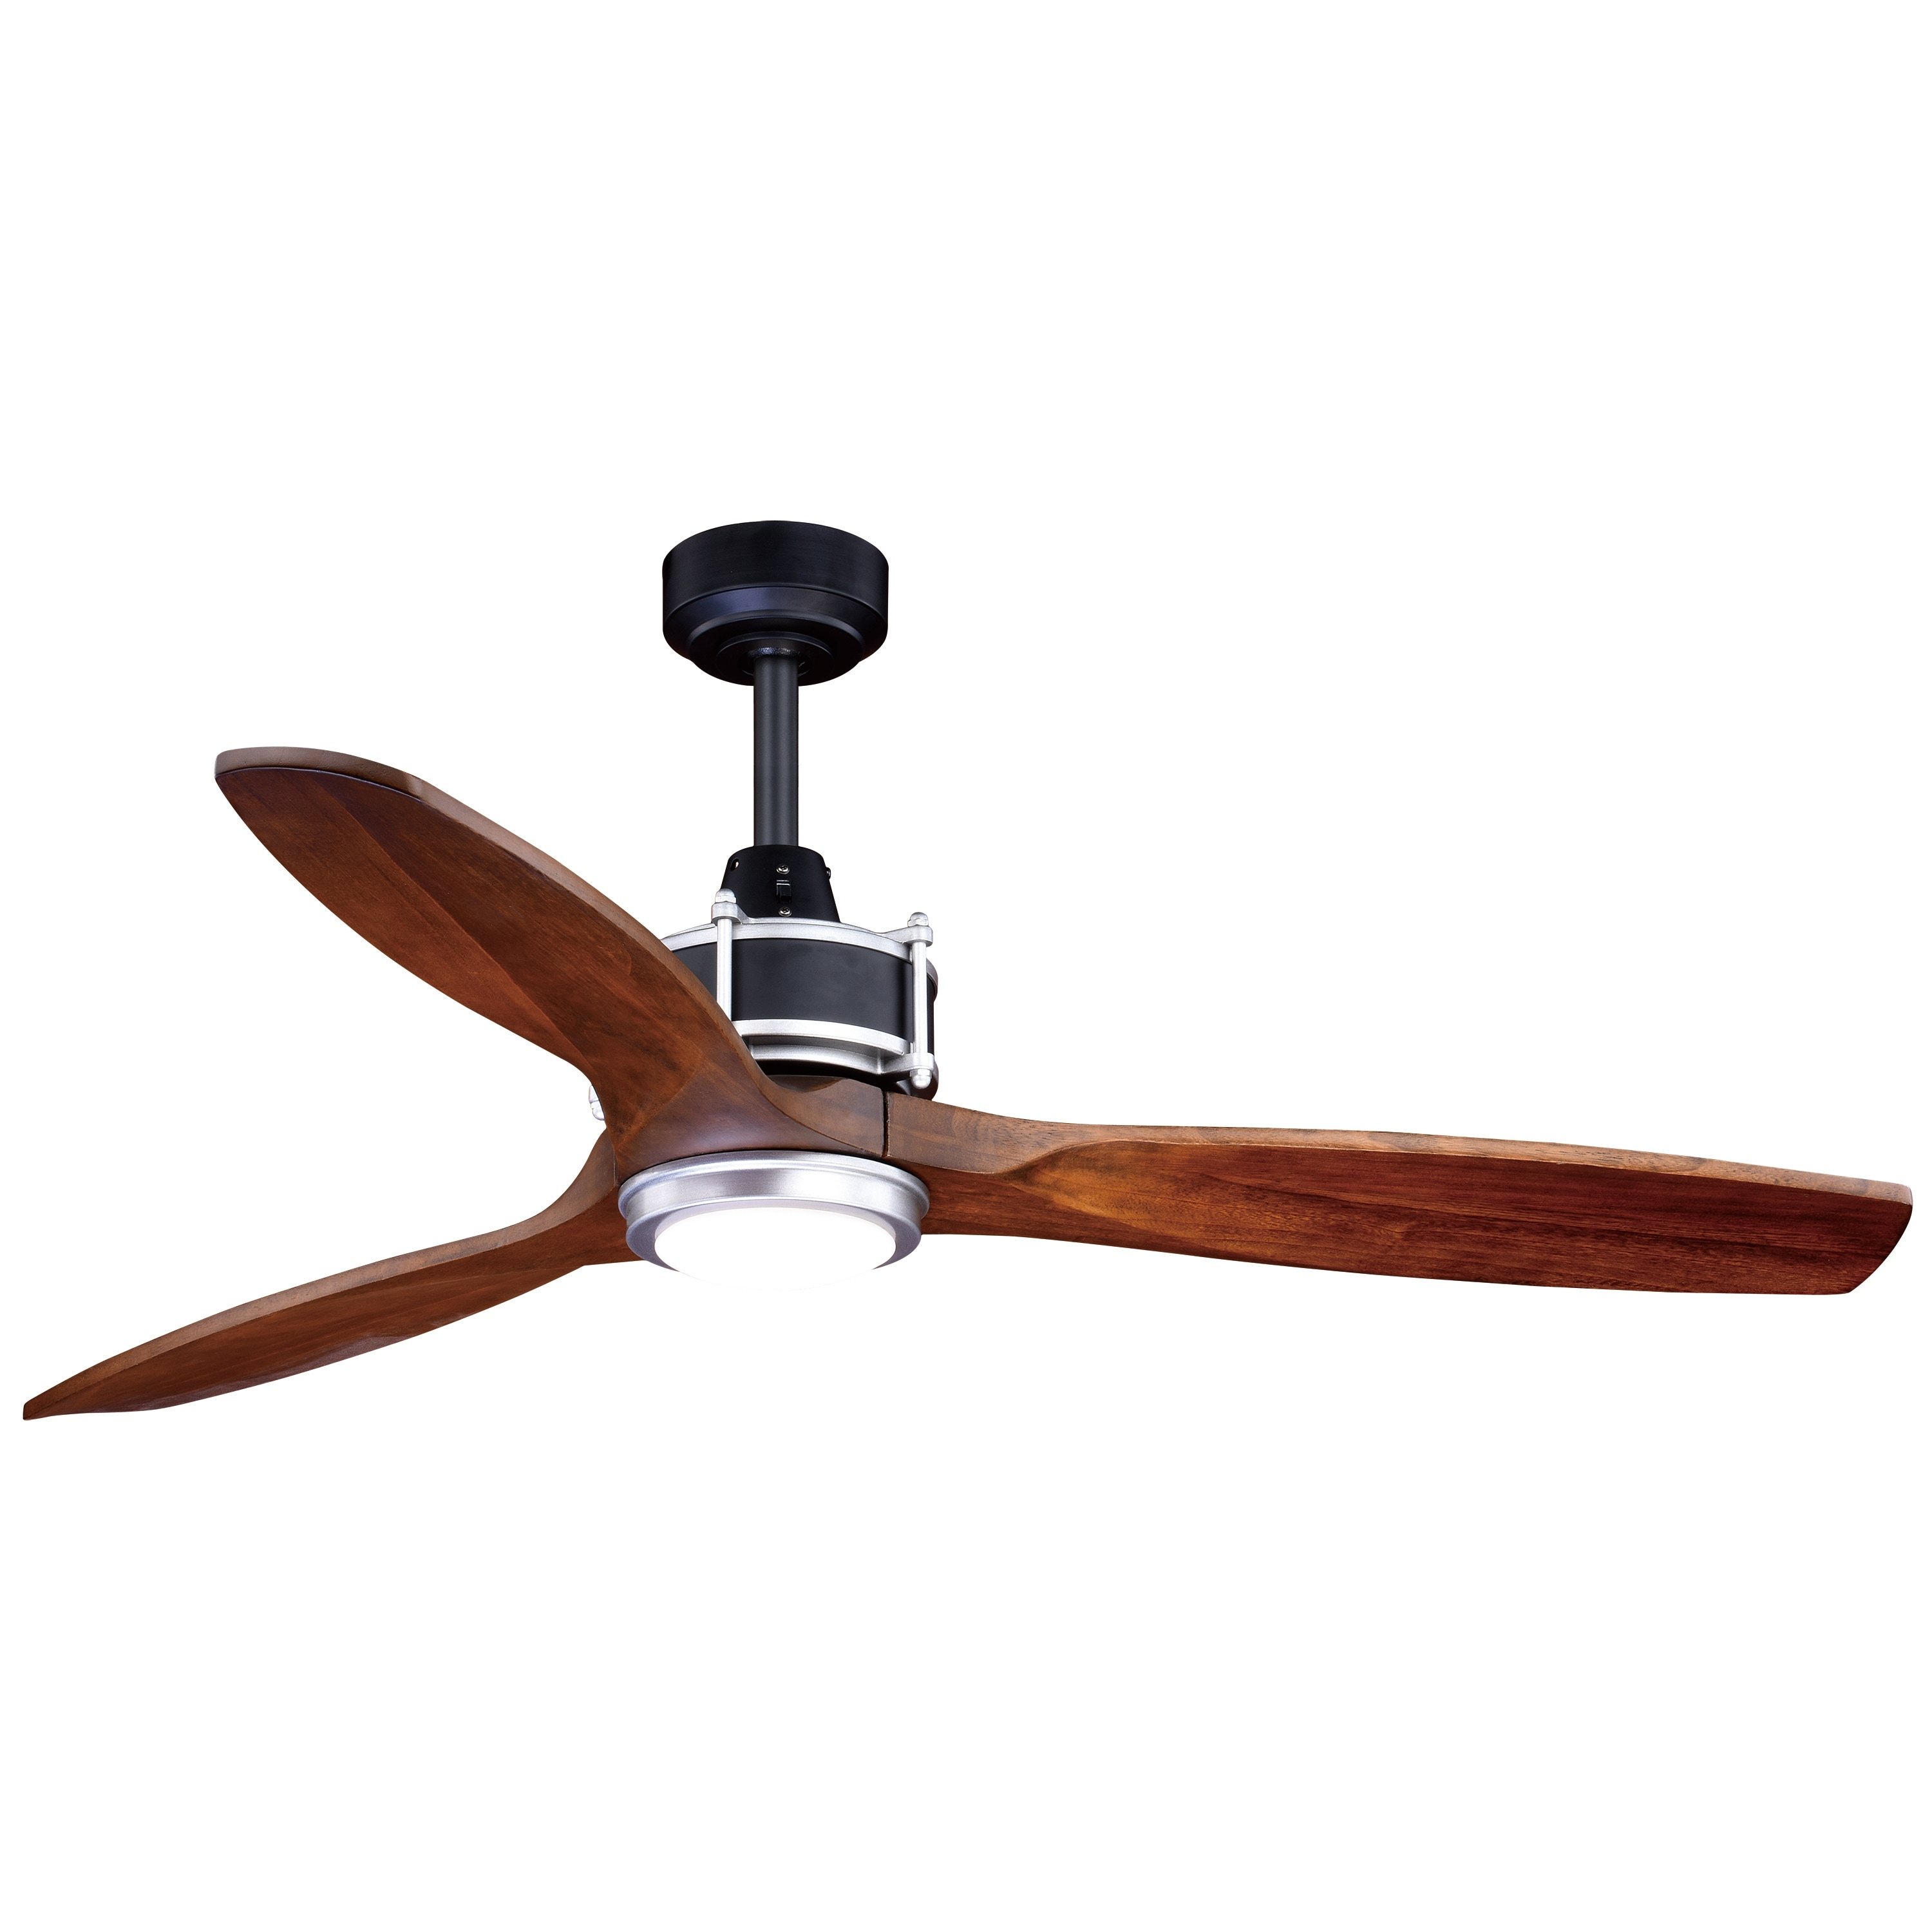 Shop Black Friday Deals On Curtiss 3 Speed 52 Inch Black Outdoor Ceiling Fan 52 In W X 21 75 In H X 52 In D Overstock 22694238